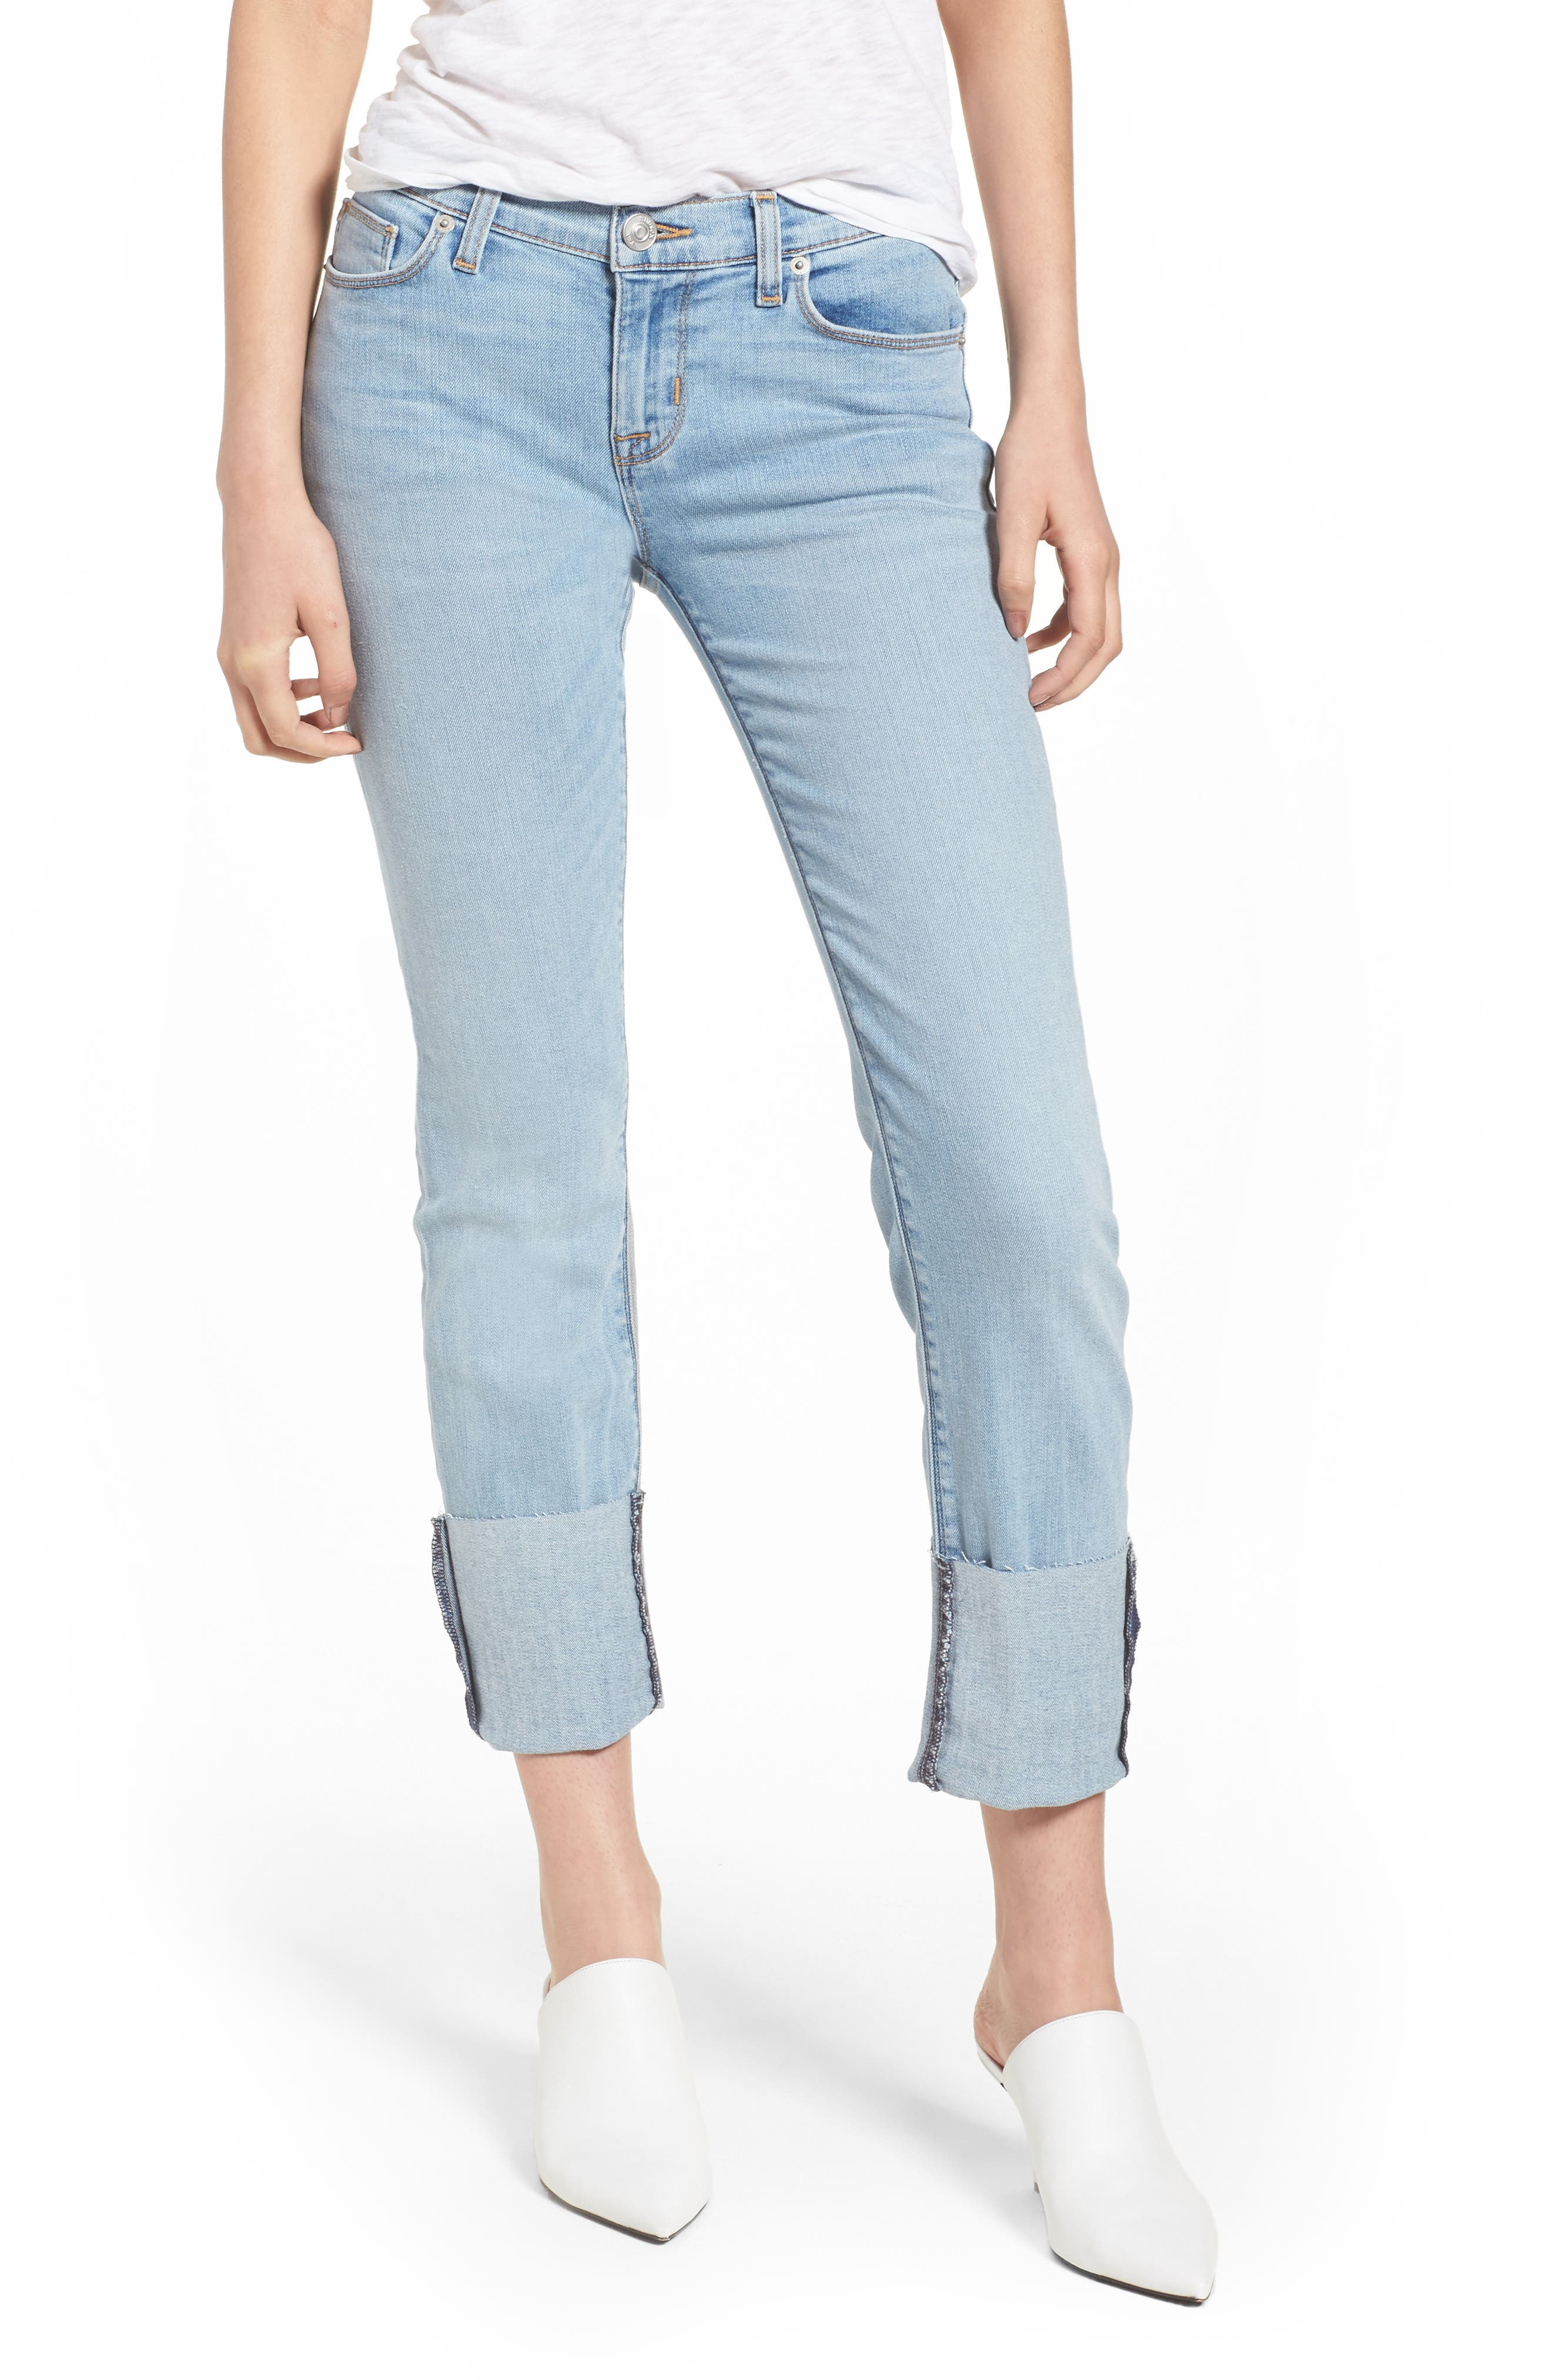 Tally Cuffed Crop Skinny Jeans,                             Main thumbnail 3, color,